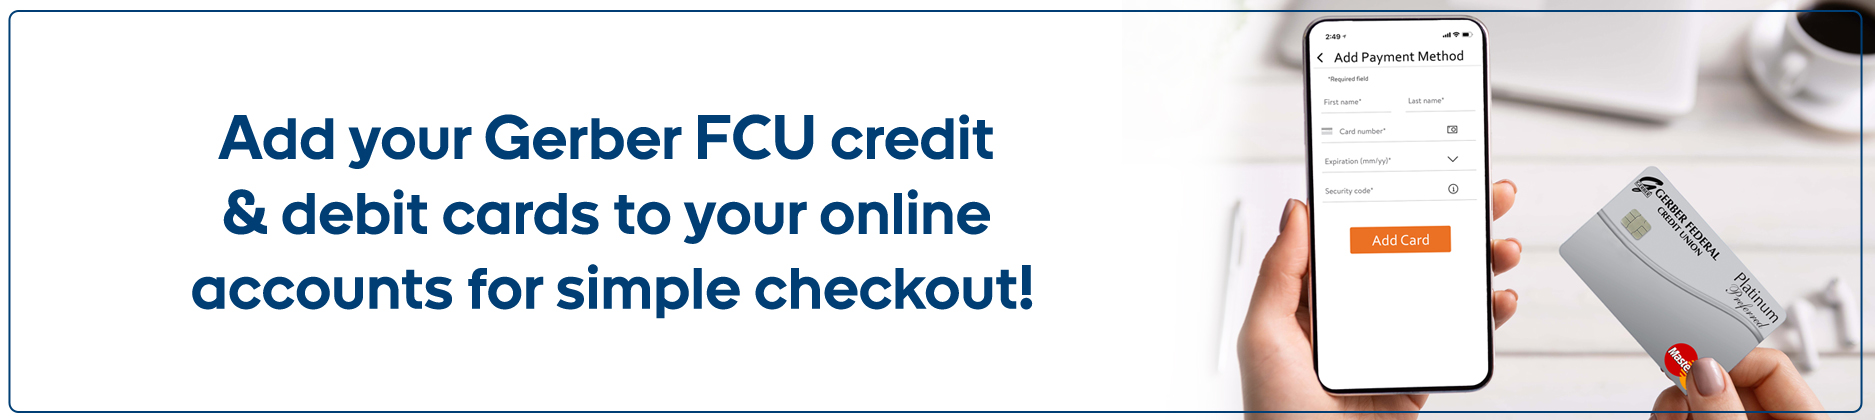 Add your Gerber FCU cards to online wallets for faster and more secure shopping.